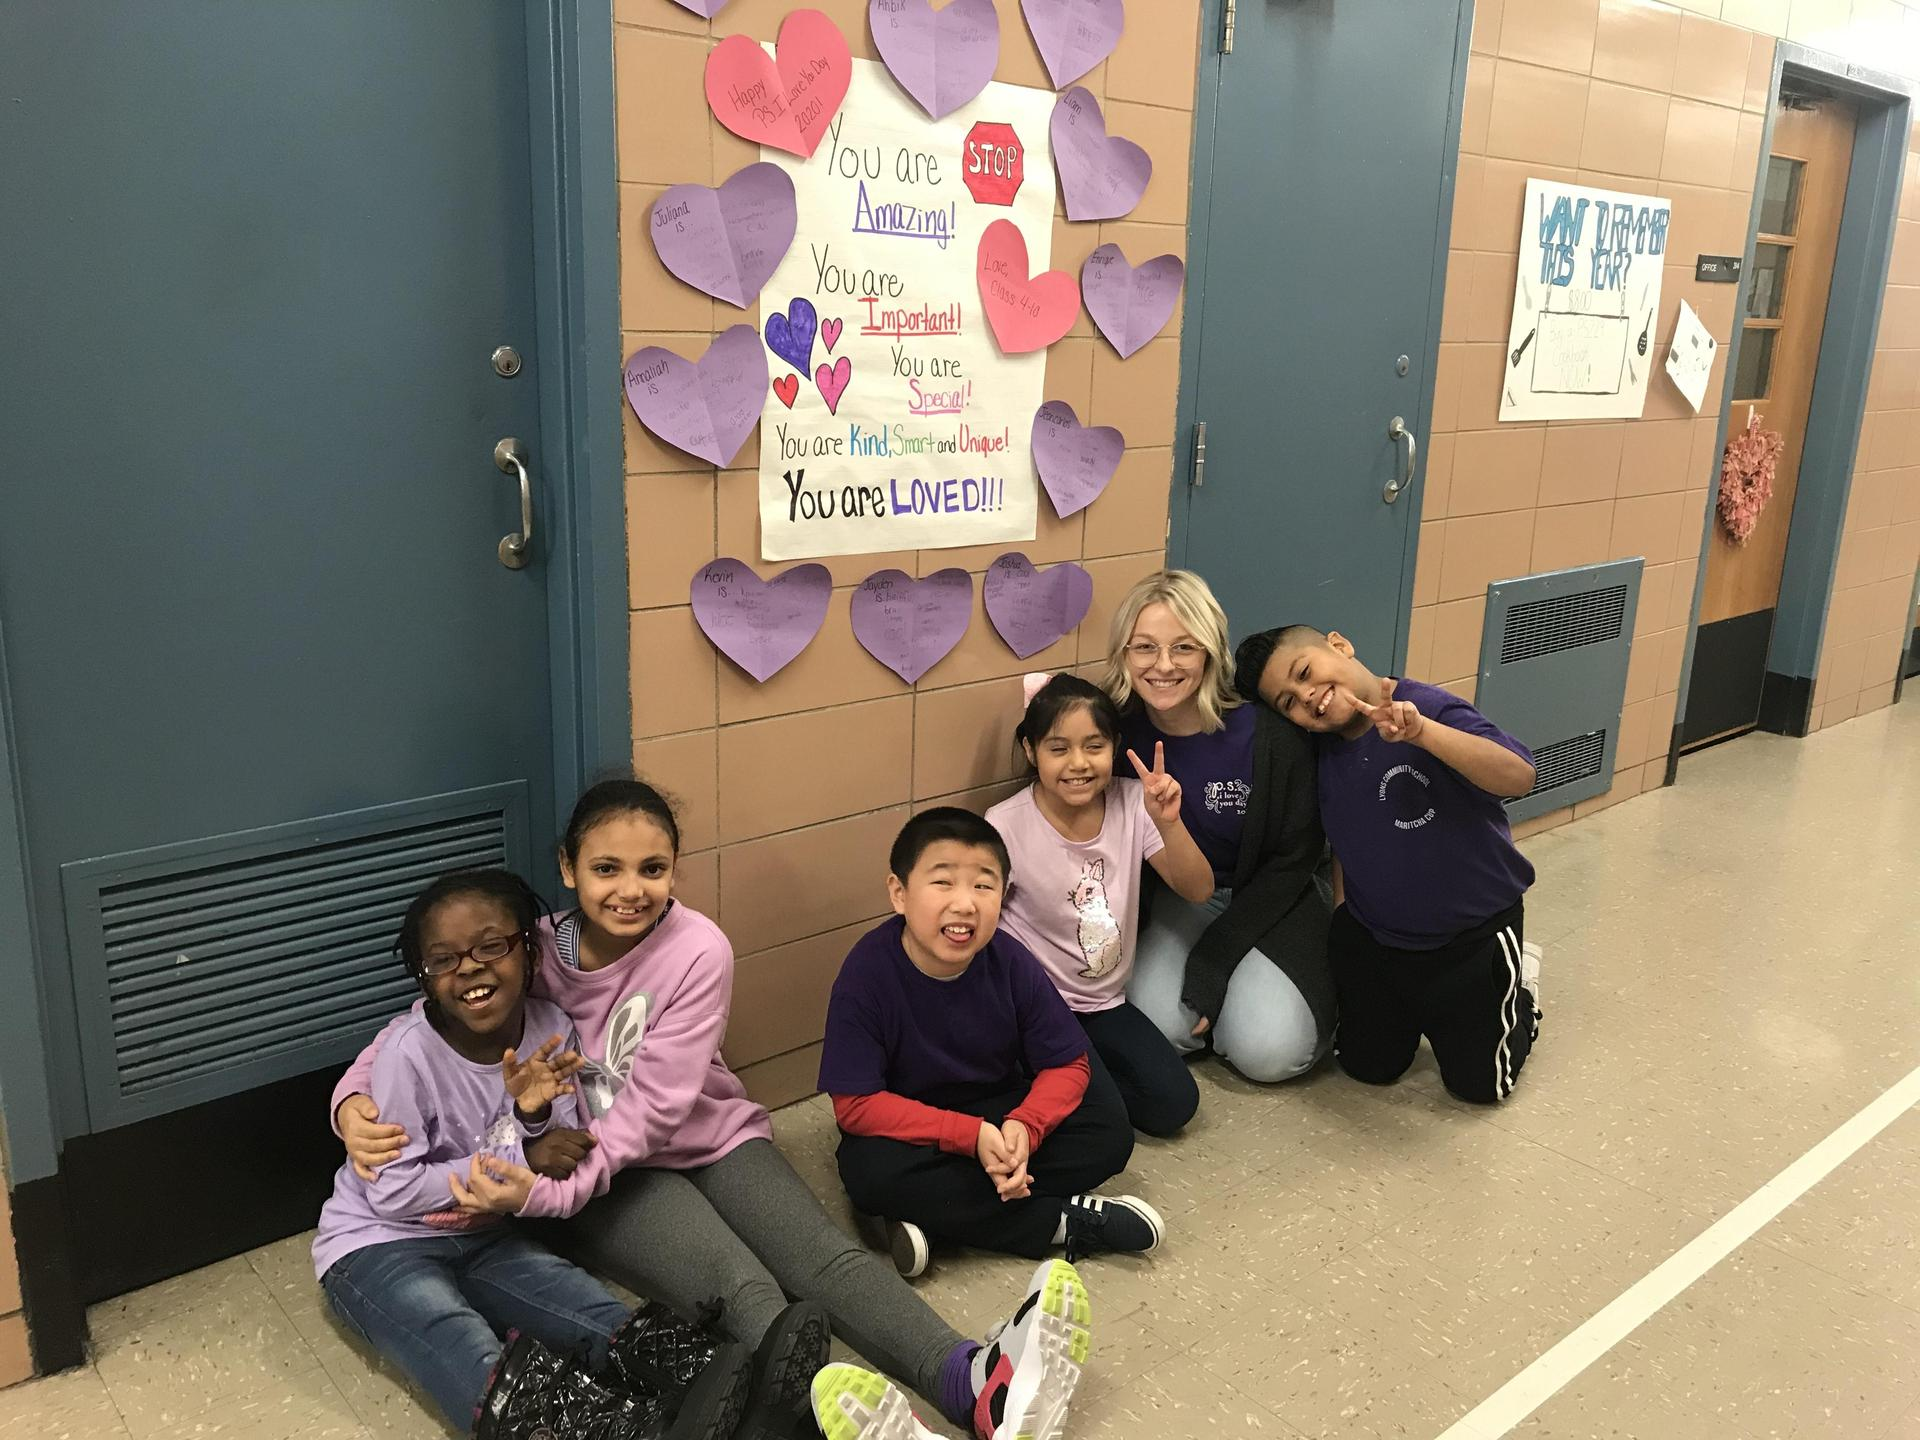 students in school hallway by messages of support for PS I Love You Day